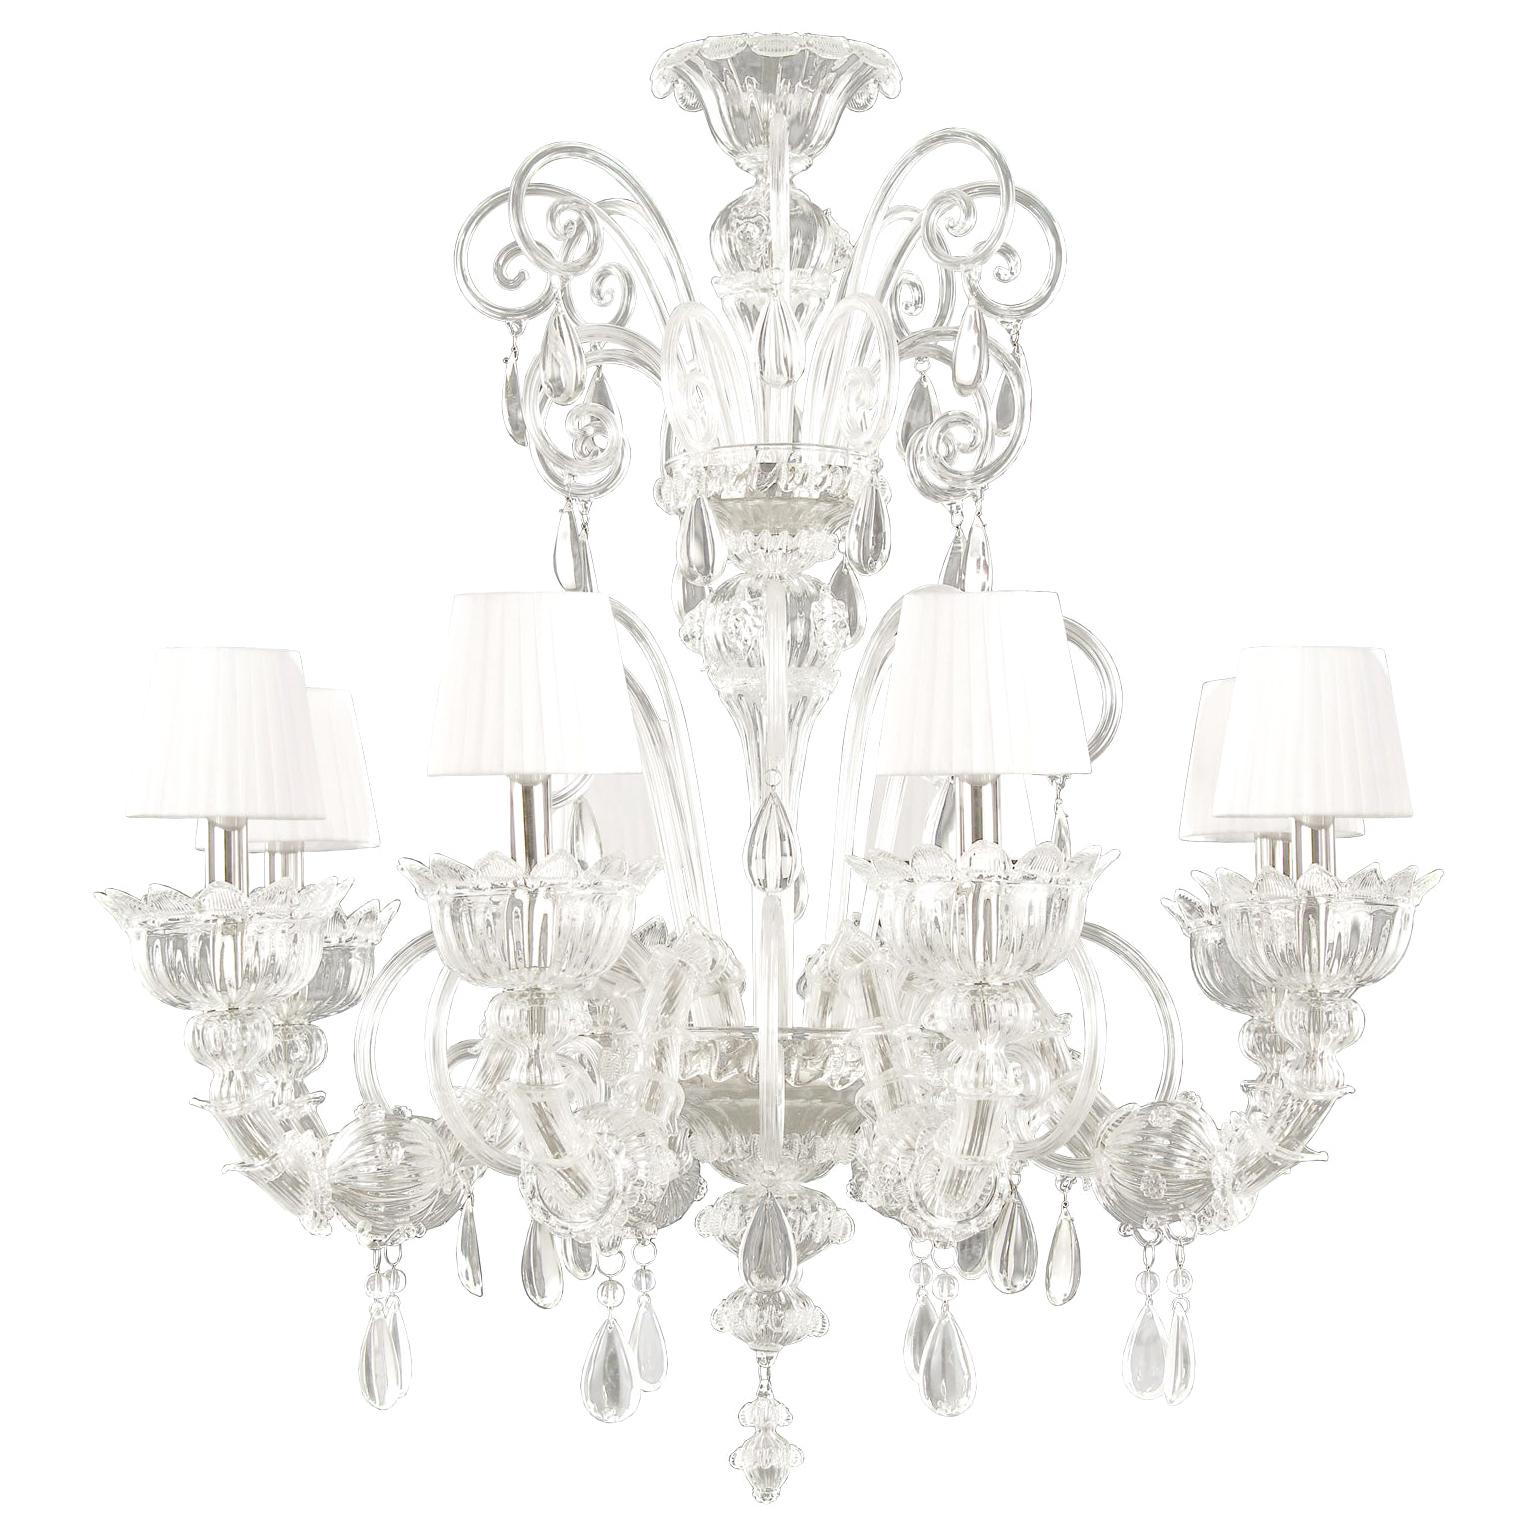 Artistic Chandelier 8 arms Murano Glass Lampshades Montecristo by Multiforme